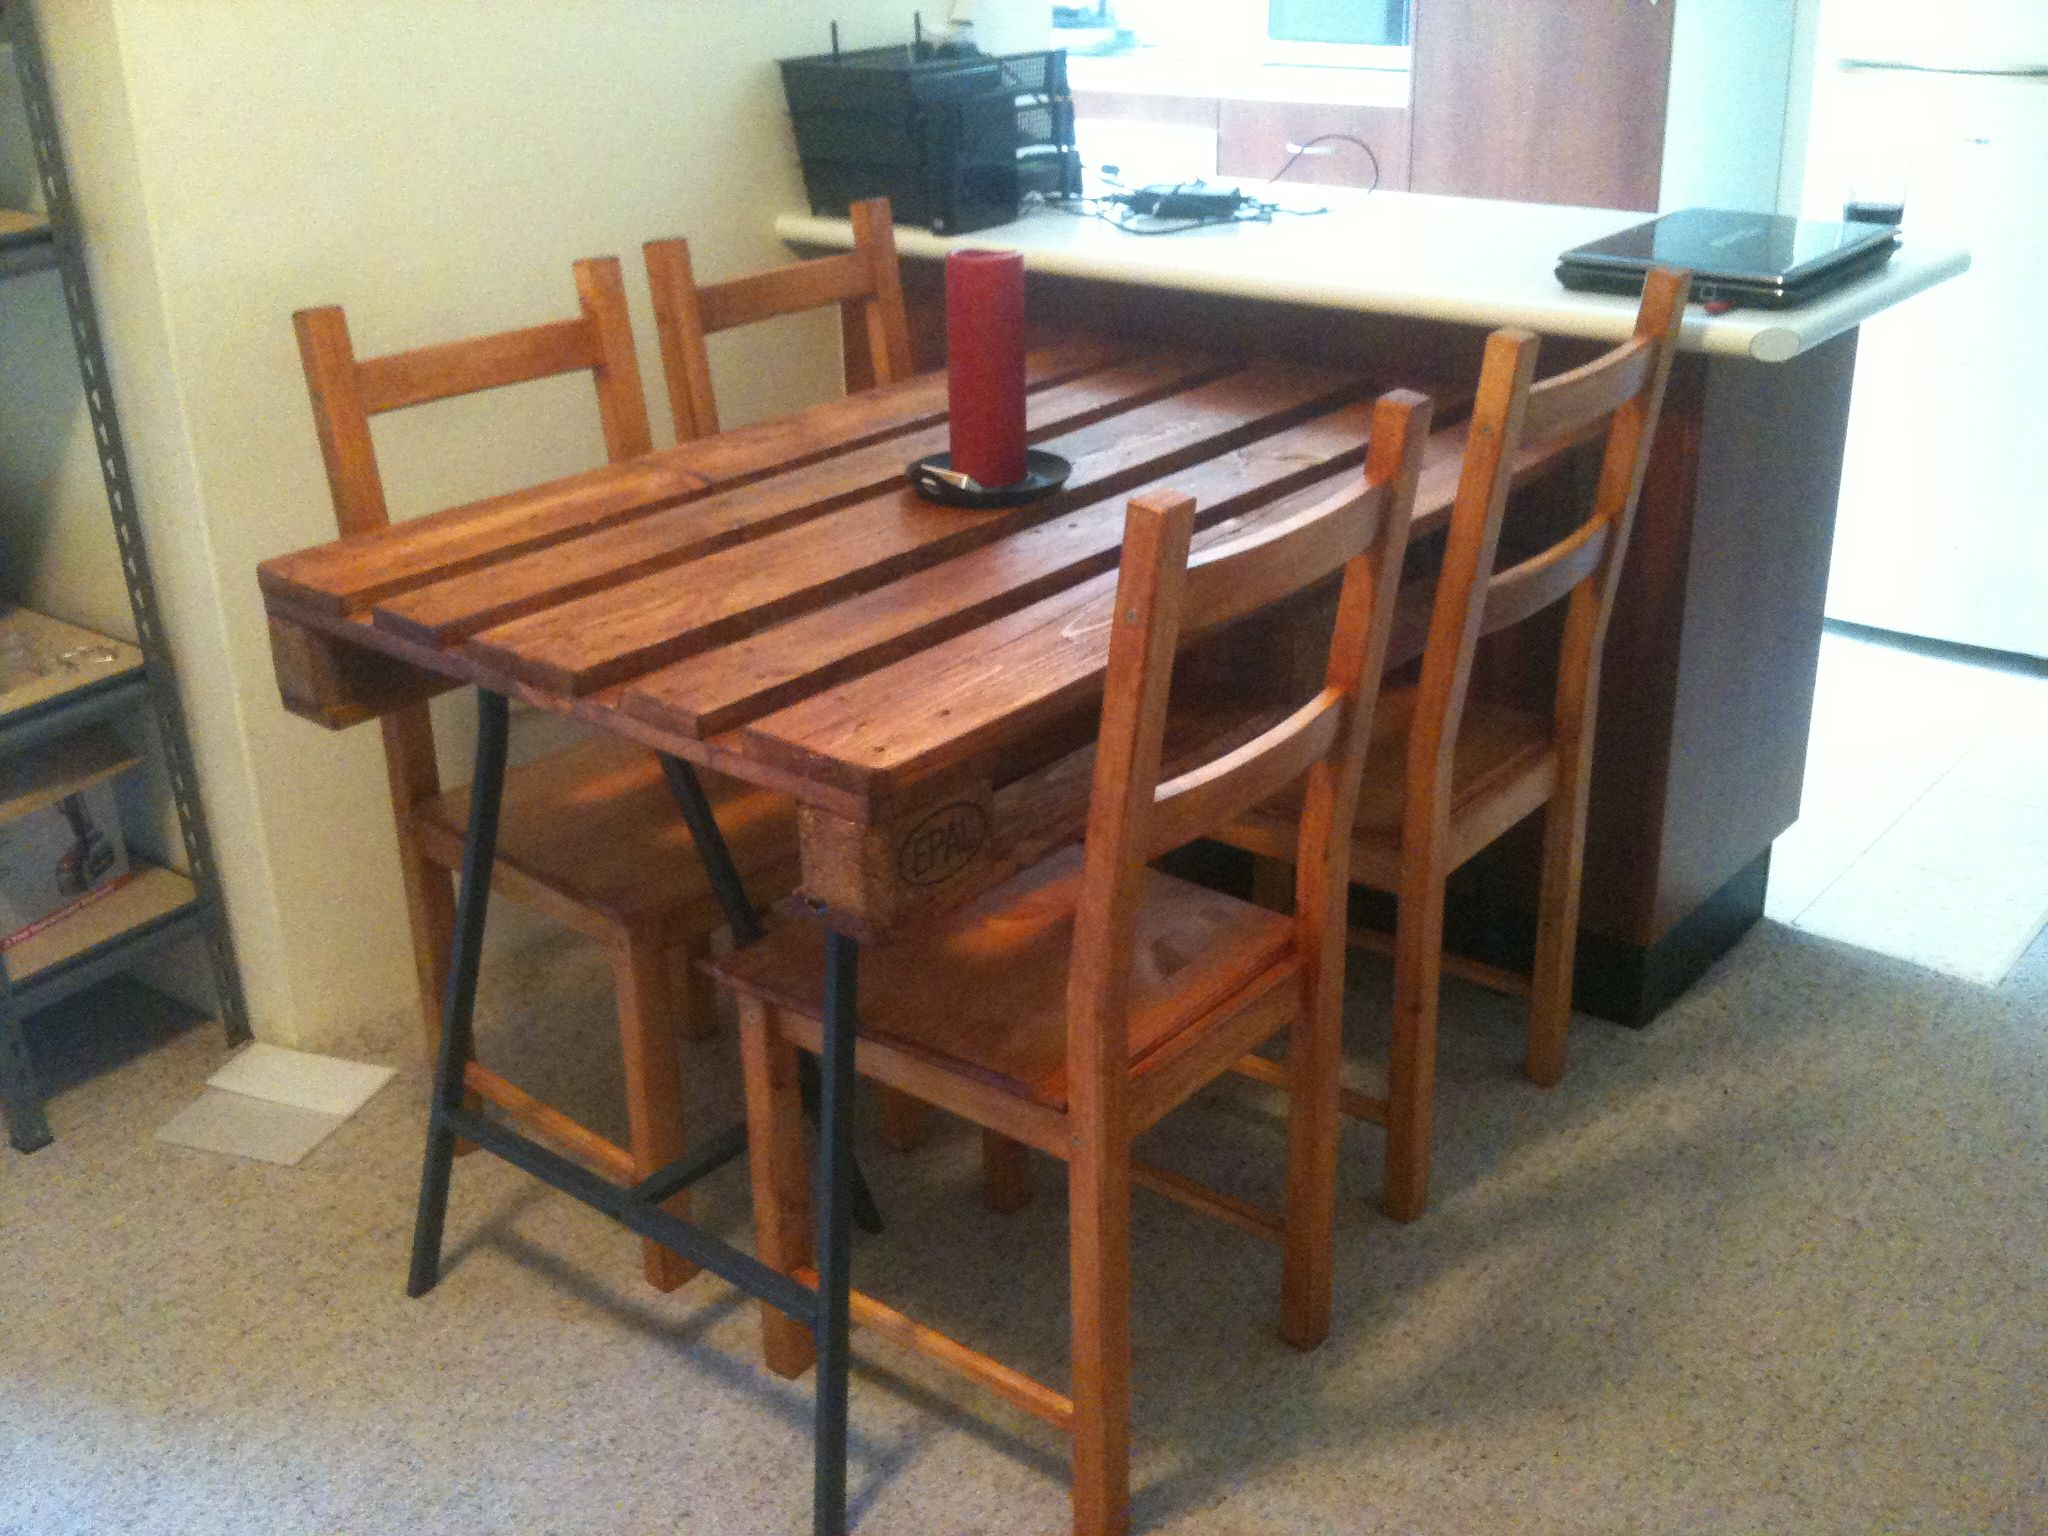 My DIY recycled timber euro pallet dining table I used steel